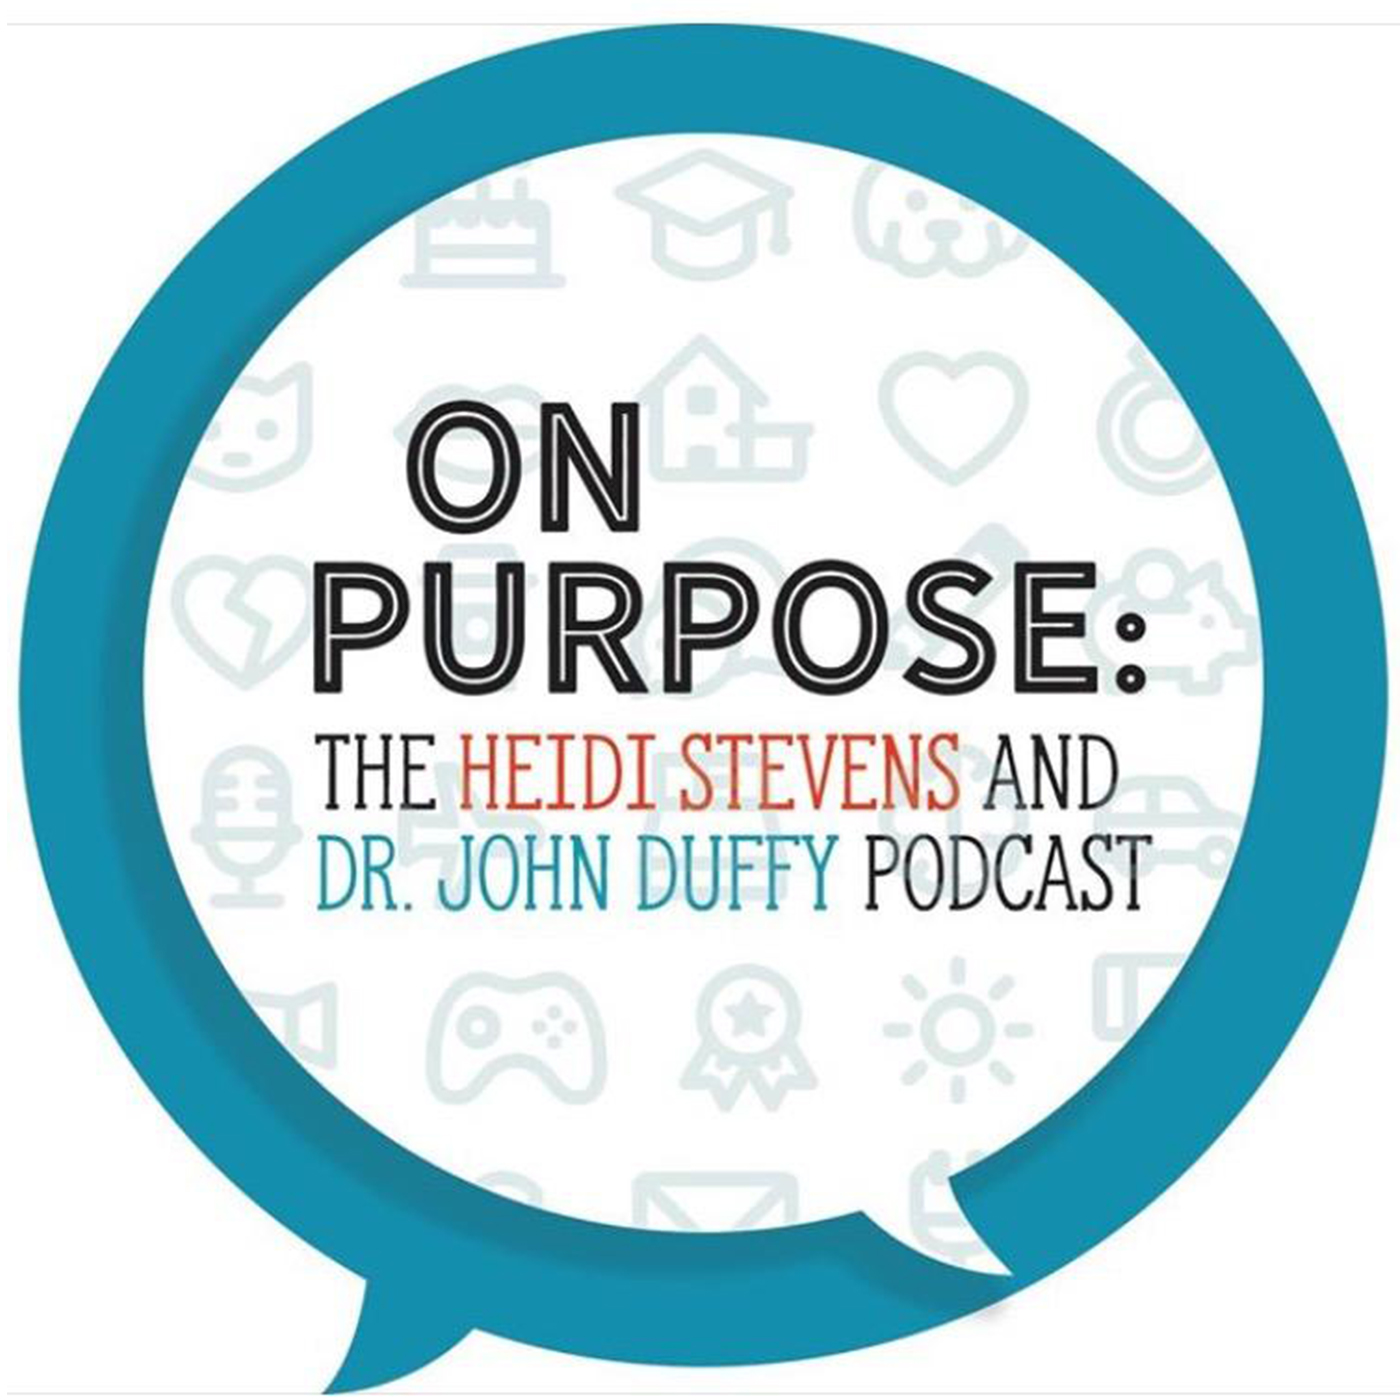 On Purpose: The Heidi Stevens And Dr. John Duffy Podcast